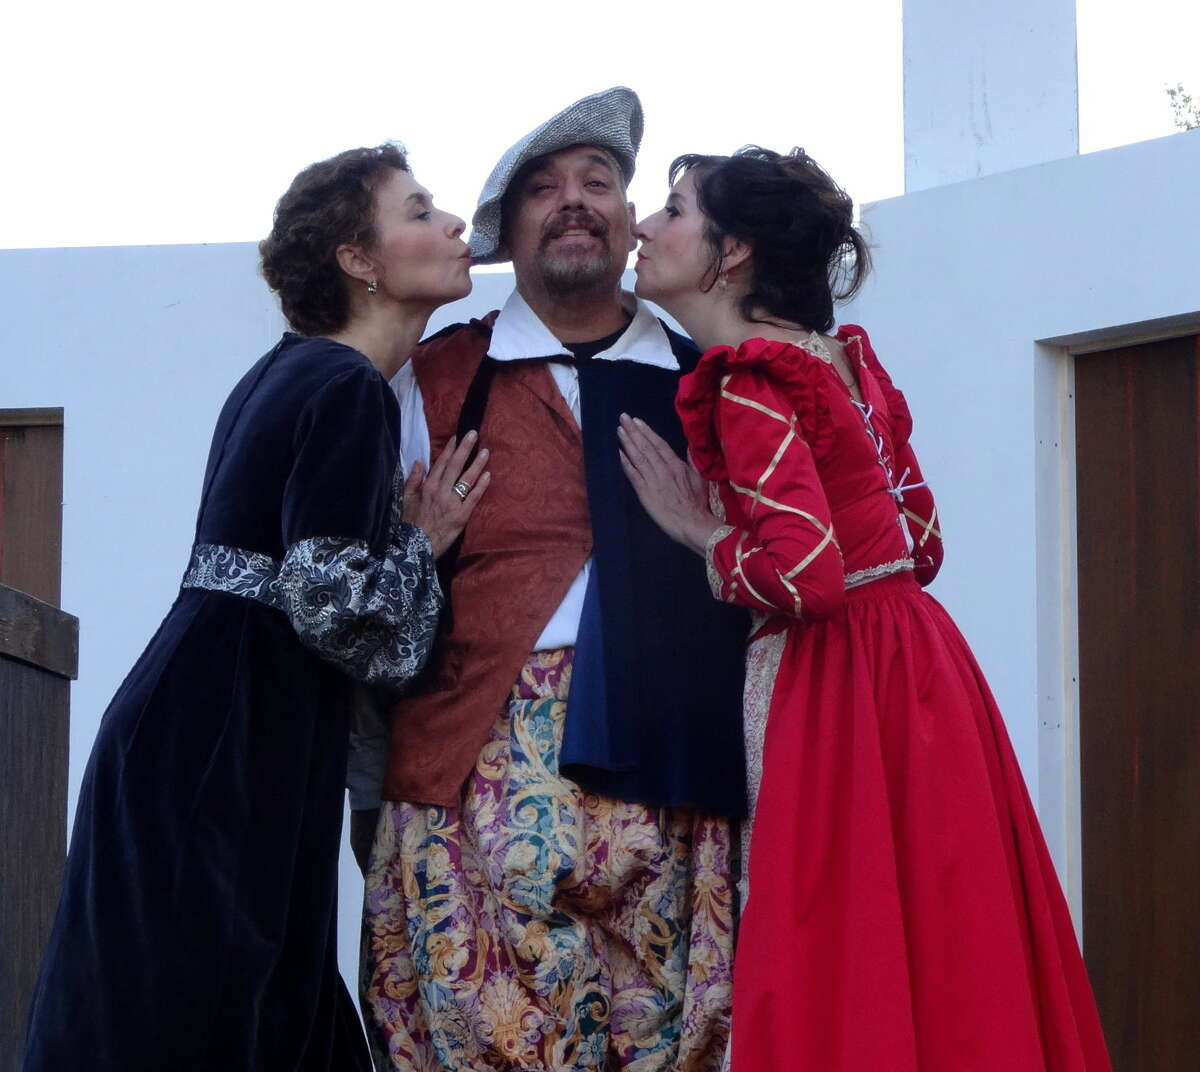 The two ladies of the title (Jessie Gilbert and Kimberley Lowden) have some fun with Stephen DiRocco as Falstaff in Curtain Call's Shakespeare on the Green presentation of